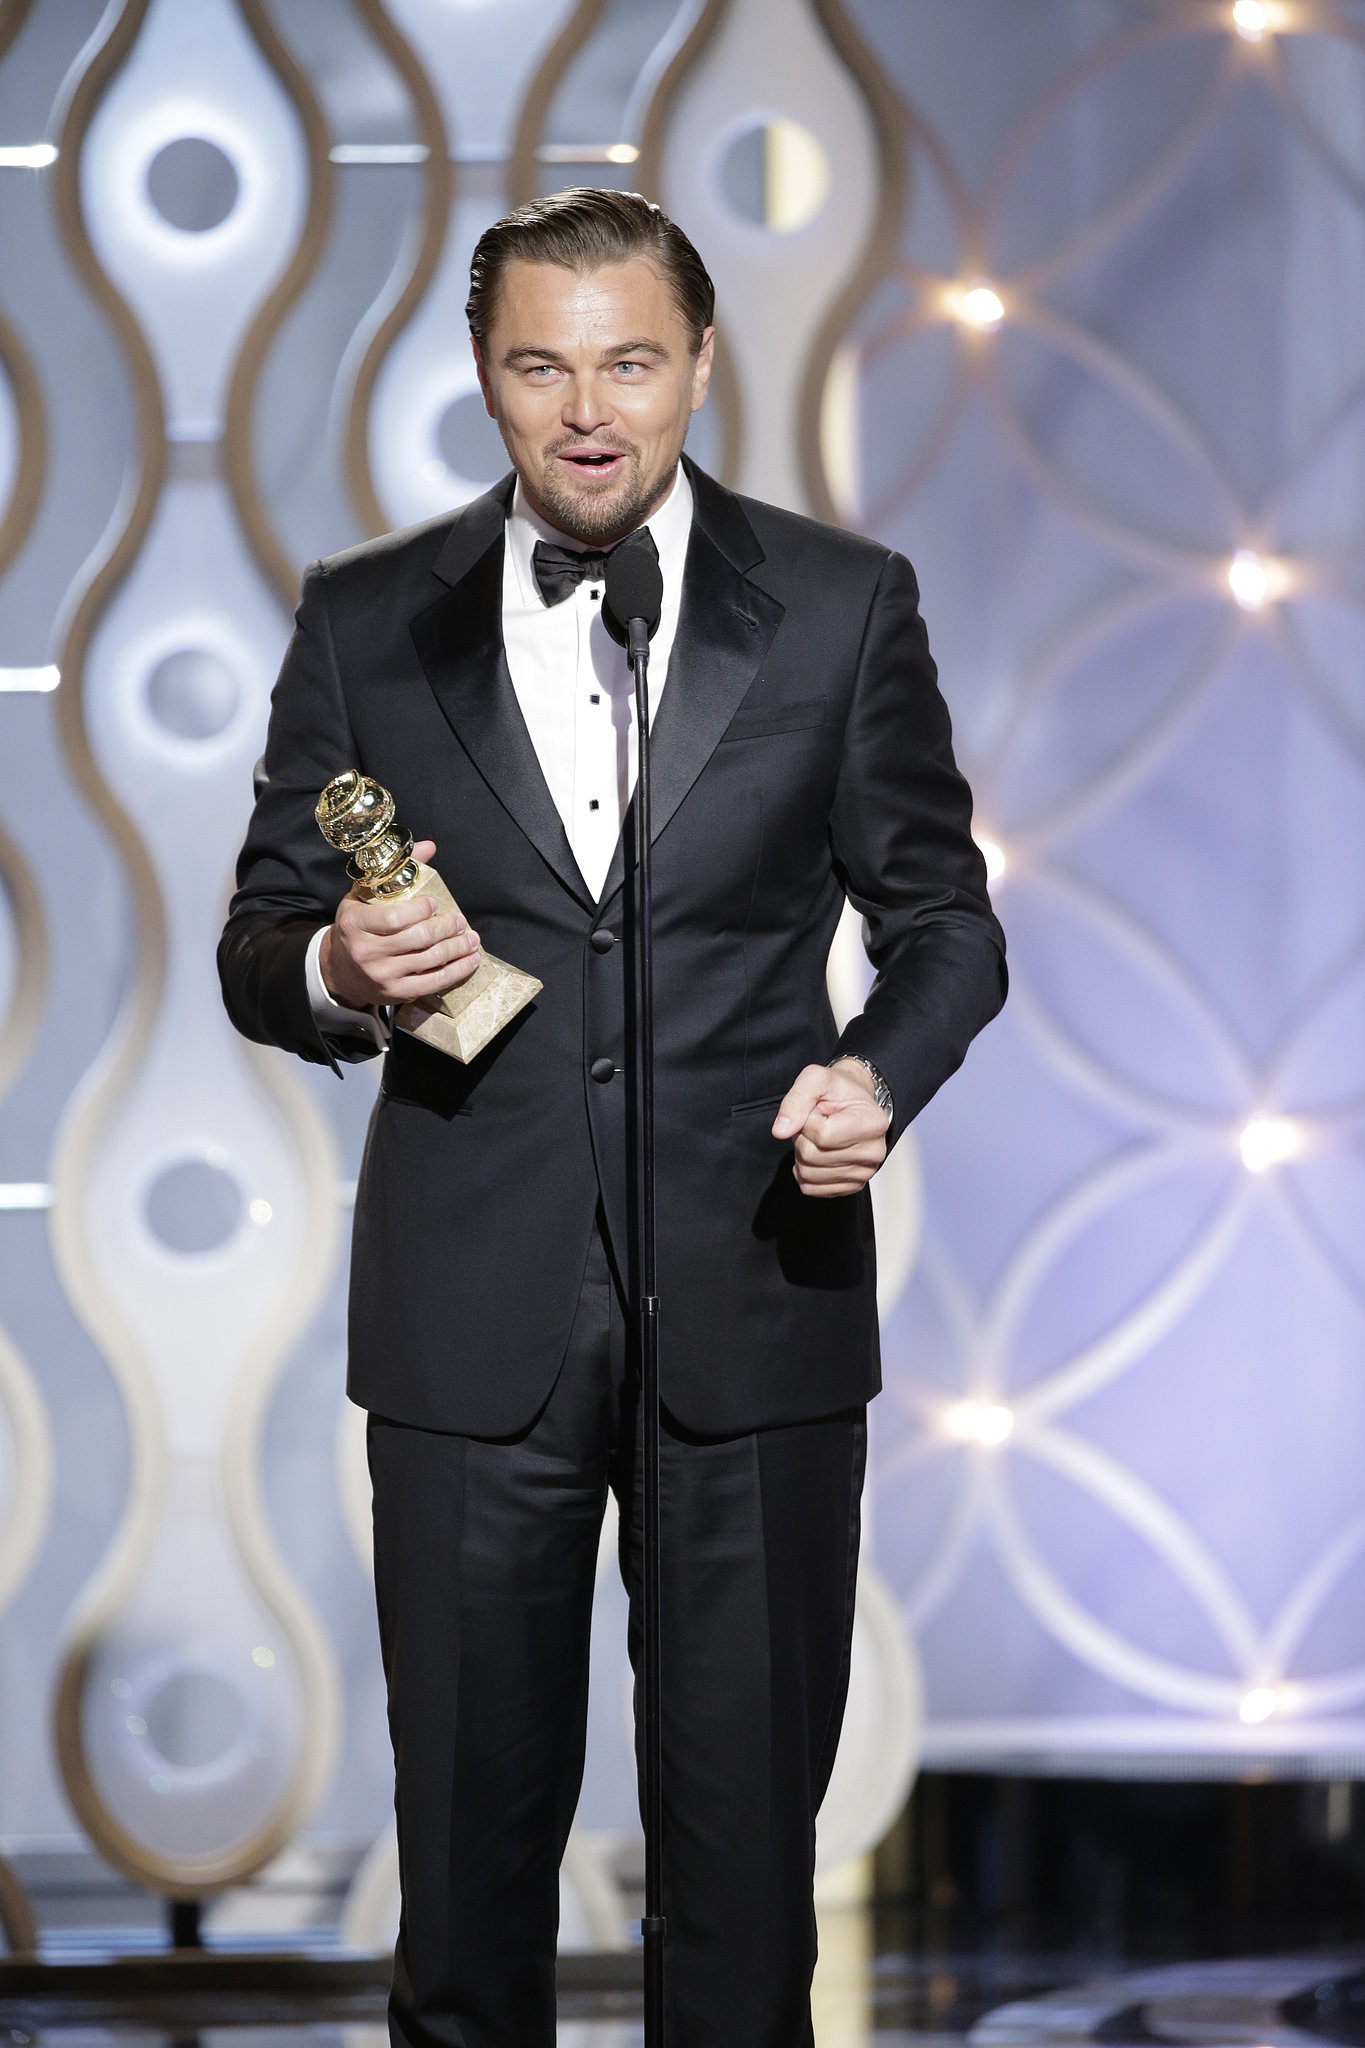 Leo took the stage to accept his best actor statue.